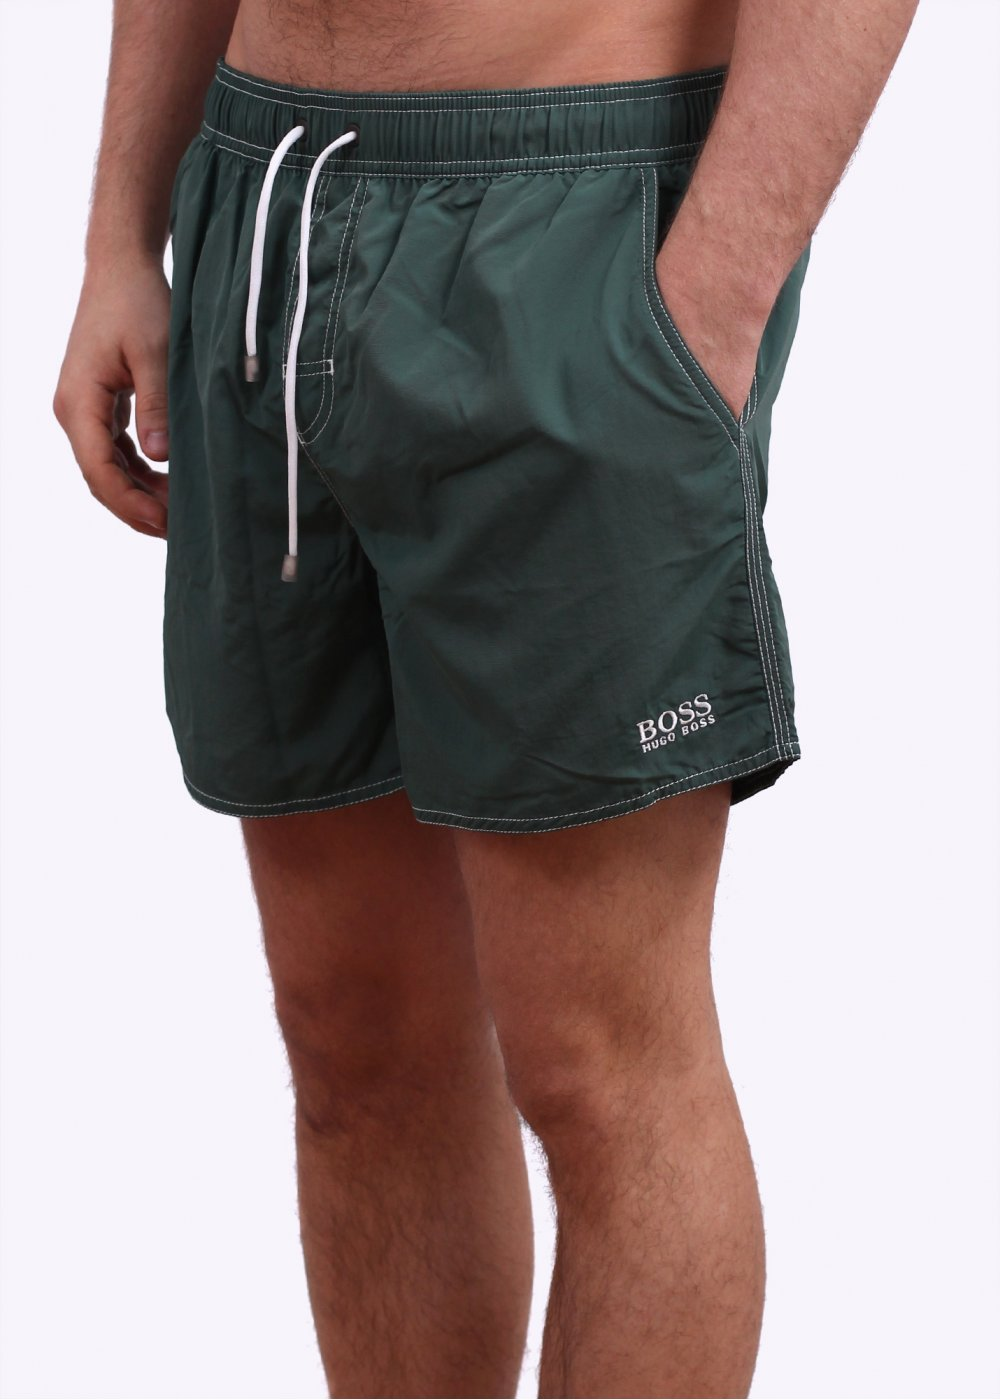 7ace46ea3 Hugo Boss Lobster Swim Shorts - Dark Green